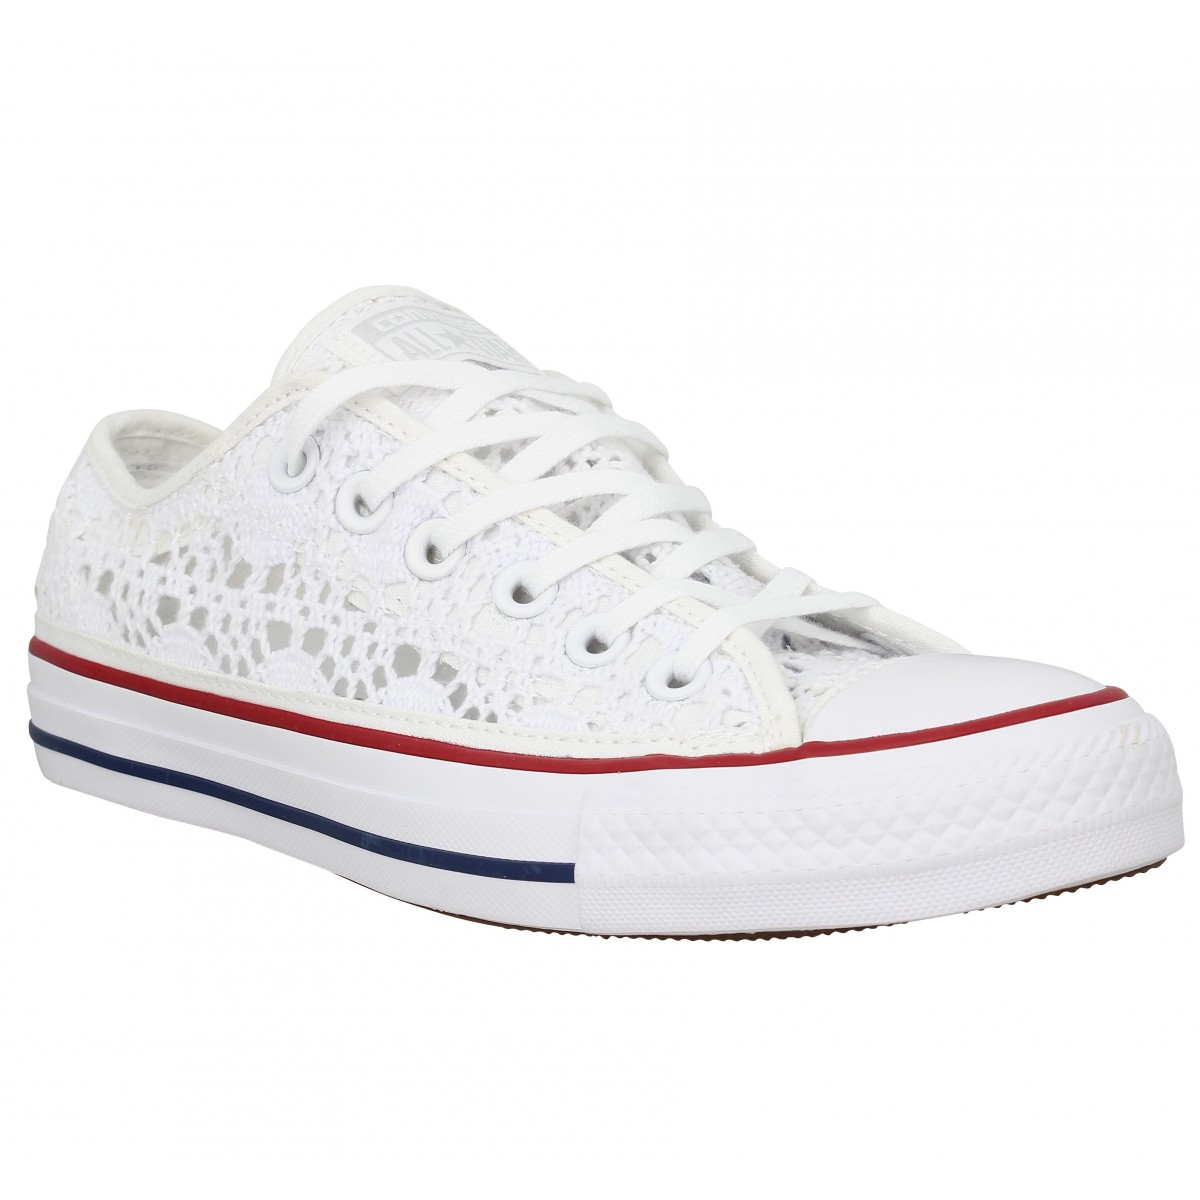 Baskets CONVERSE Chuck Taylor All Star crochet Femme Blanc